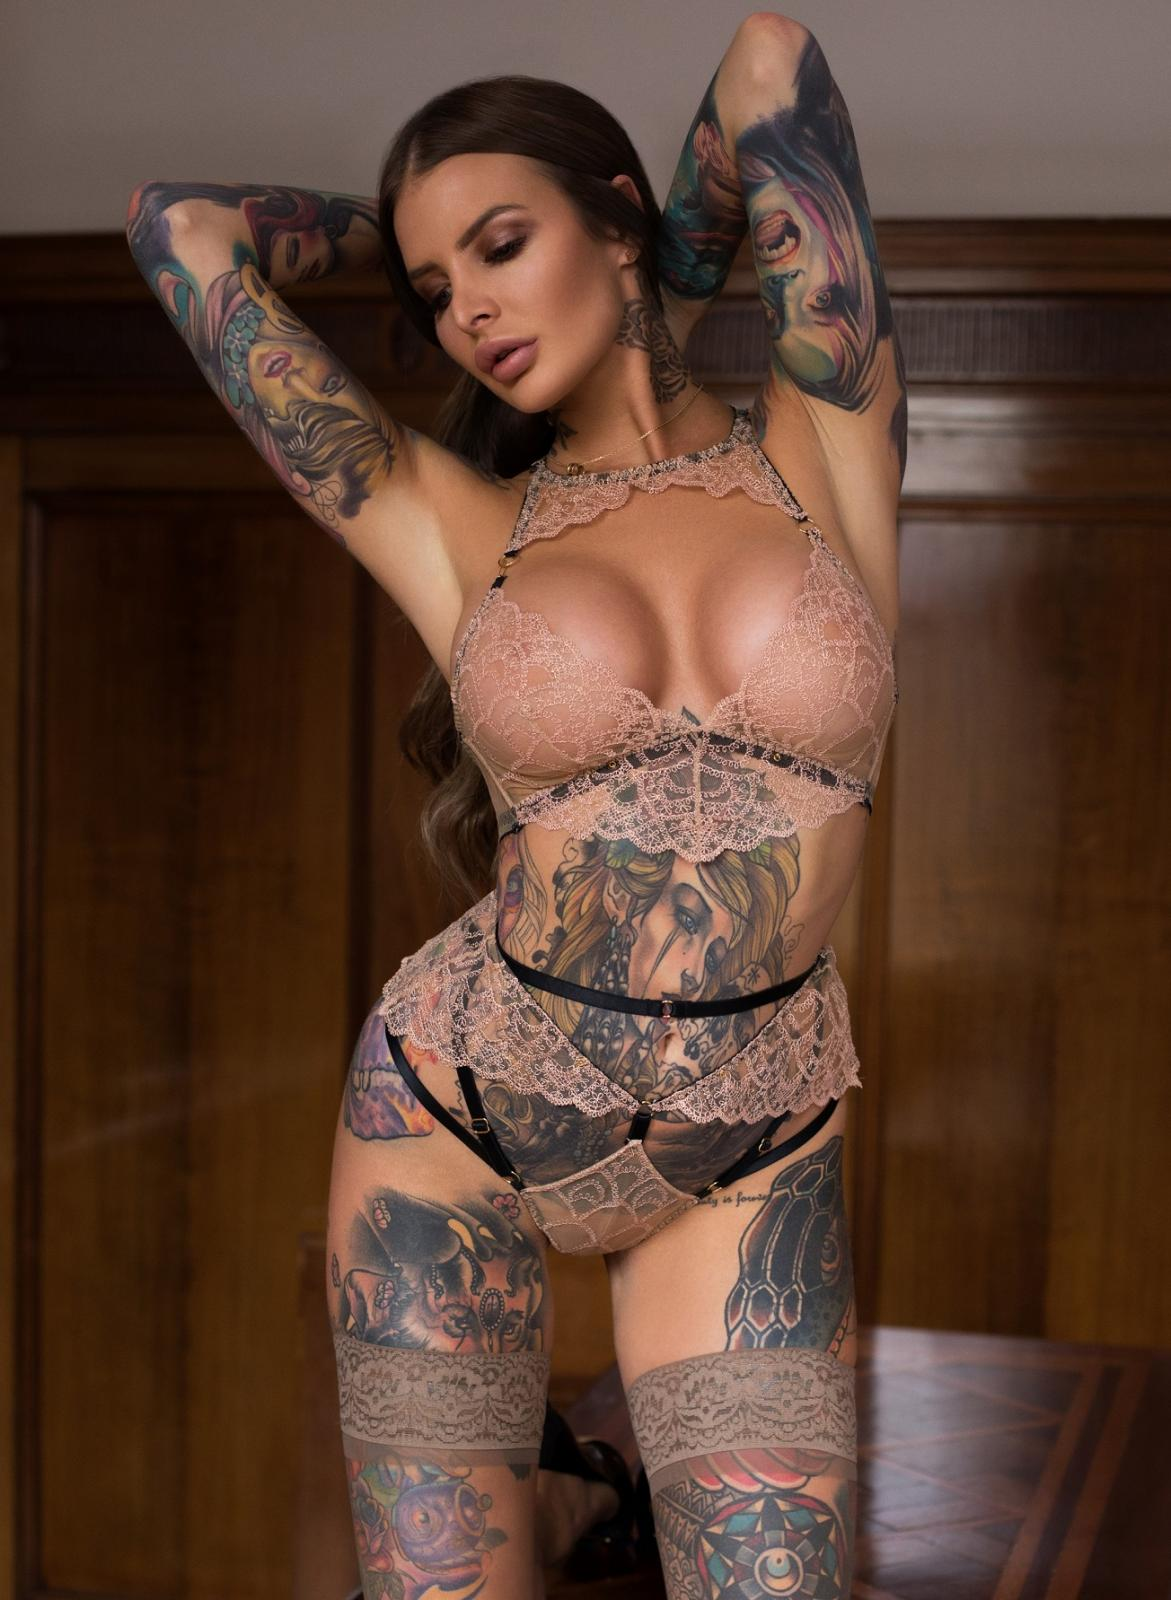 Evelyn in Melbourne this week Wed to Fri 4-6 Oct. New photos uploaded and more to come ;)